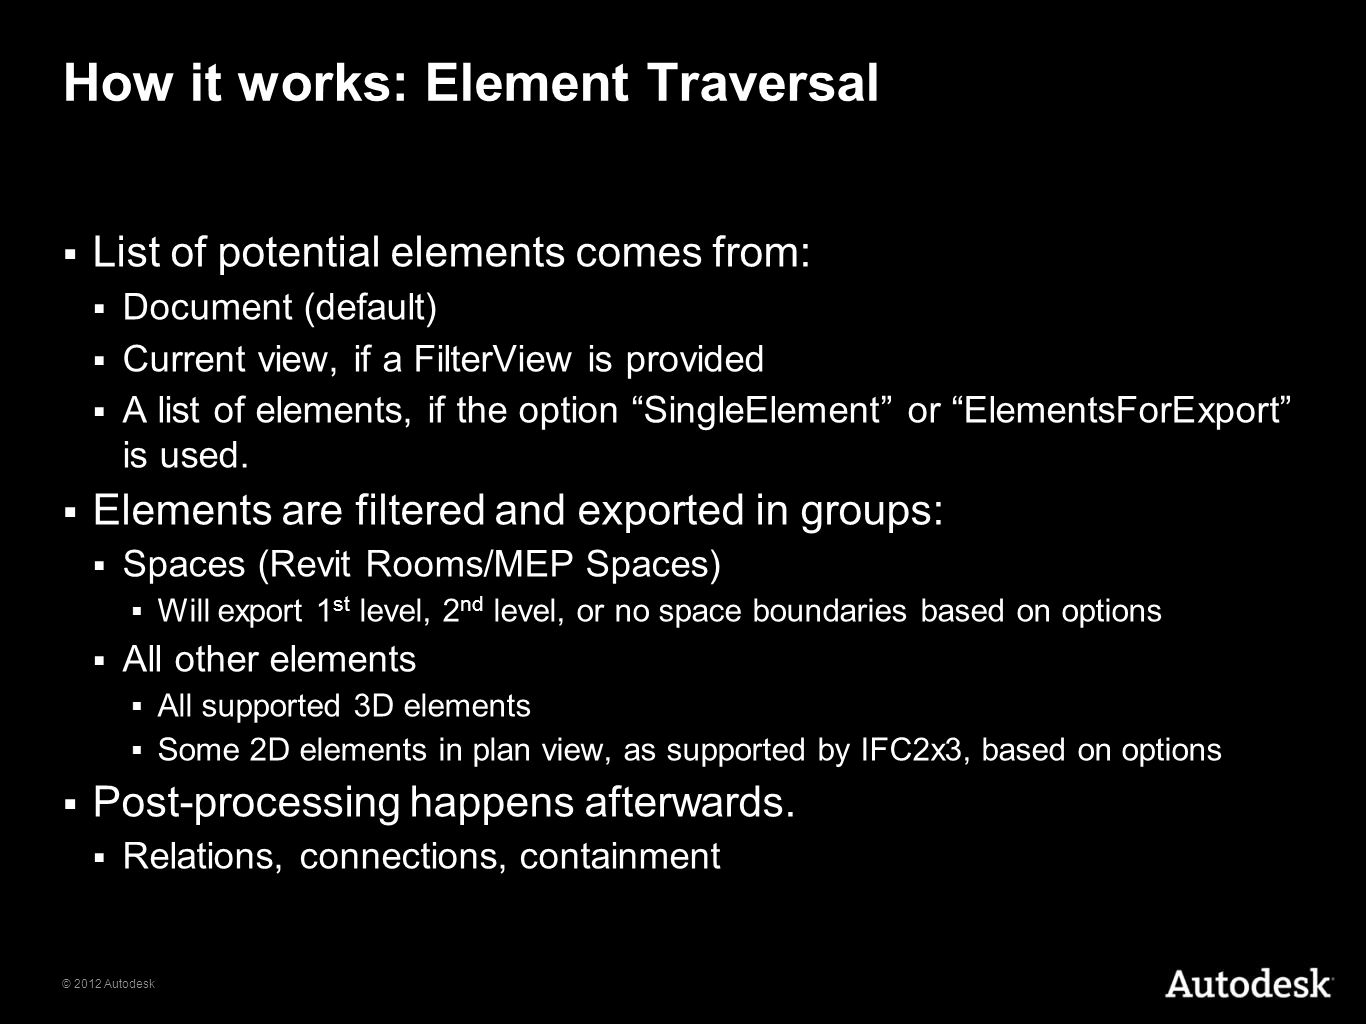 How it works: Element Traversal